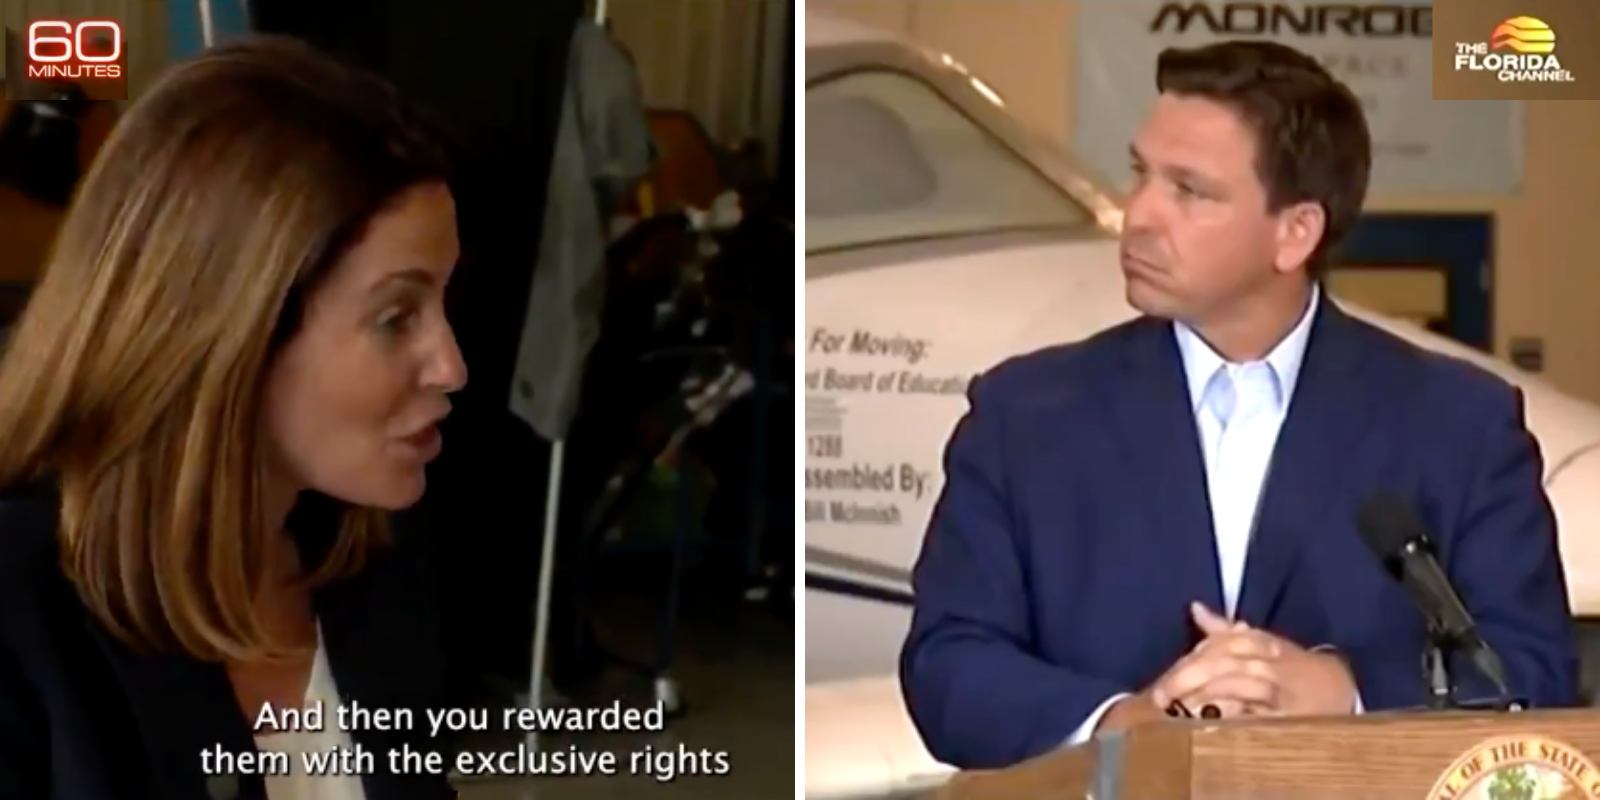 WATCH: 60 Minutes deceptively edits DeSantis' comments on vaccine rollout in attempt to implicate him in 'pay-to-play scheme'